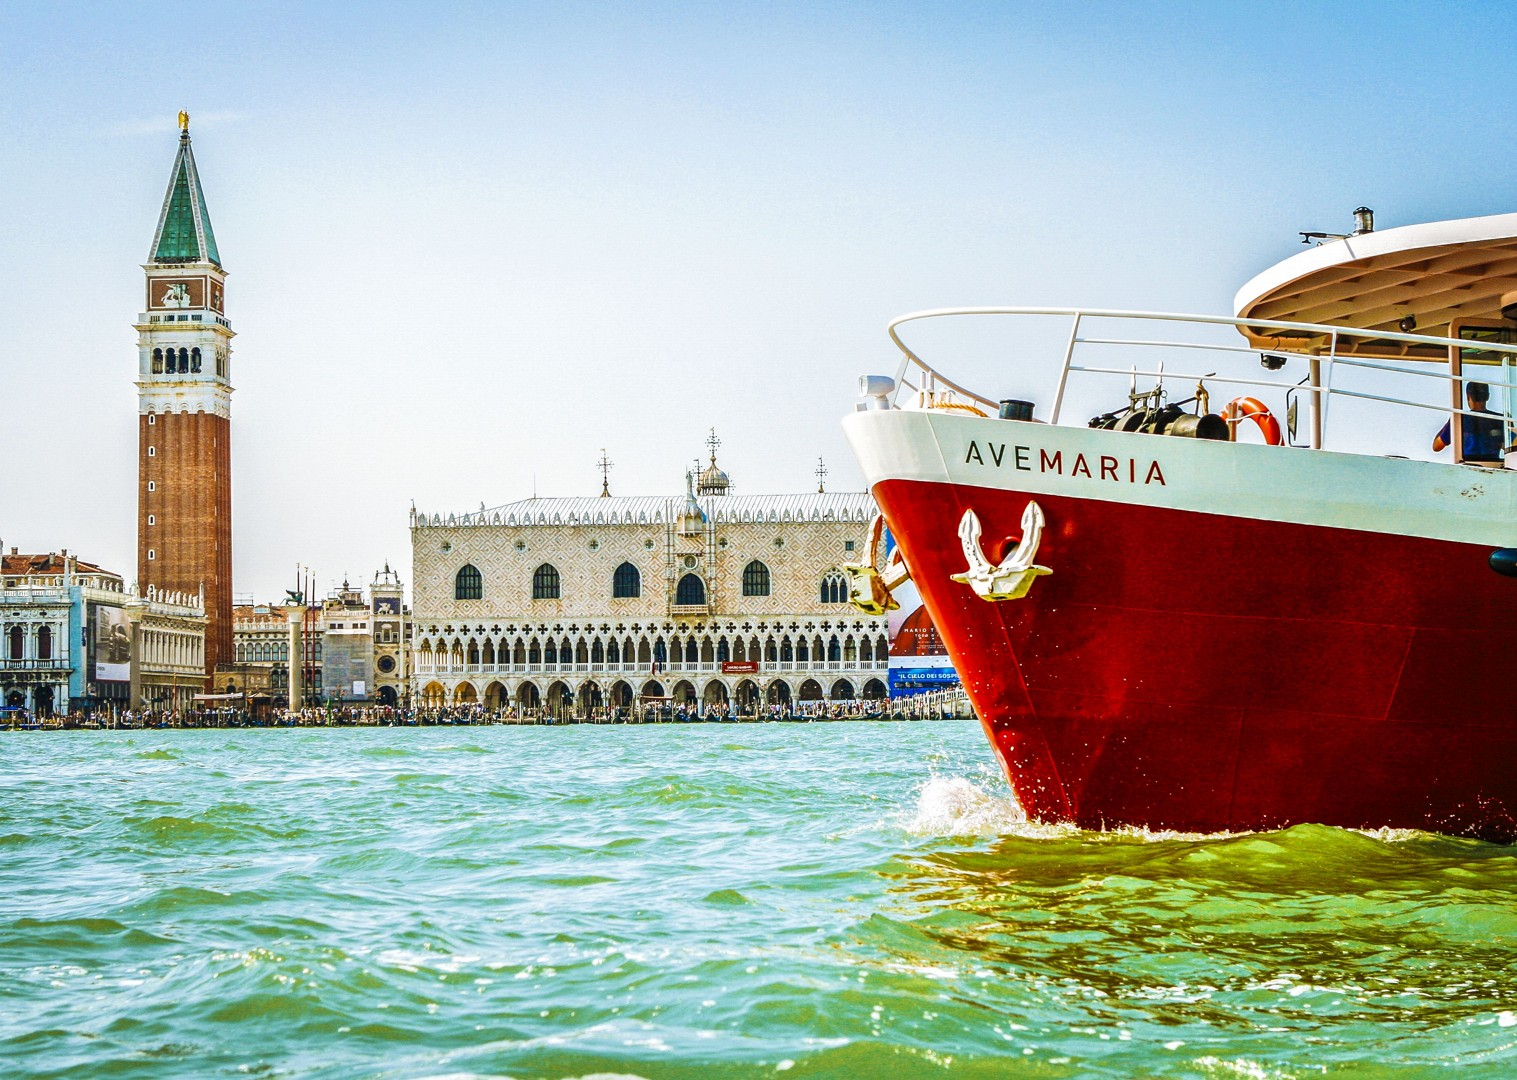 bike-and-boat-experience-ave-maria-italy-holiday-saddle-skedaddle.jpg - Italy - Venetian Waterways (Venice to Mantova) - Bike and Barge Holiday - Leisure Cycling